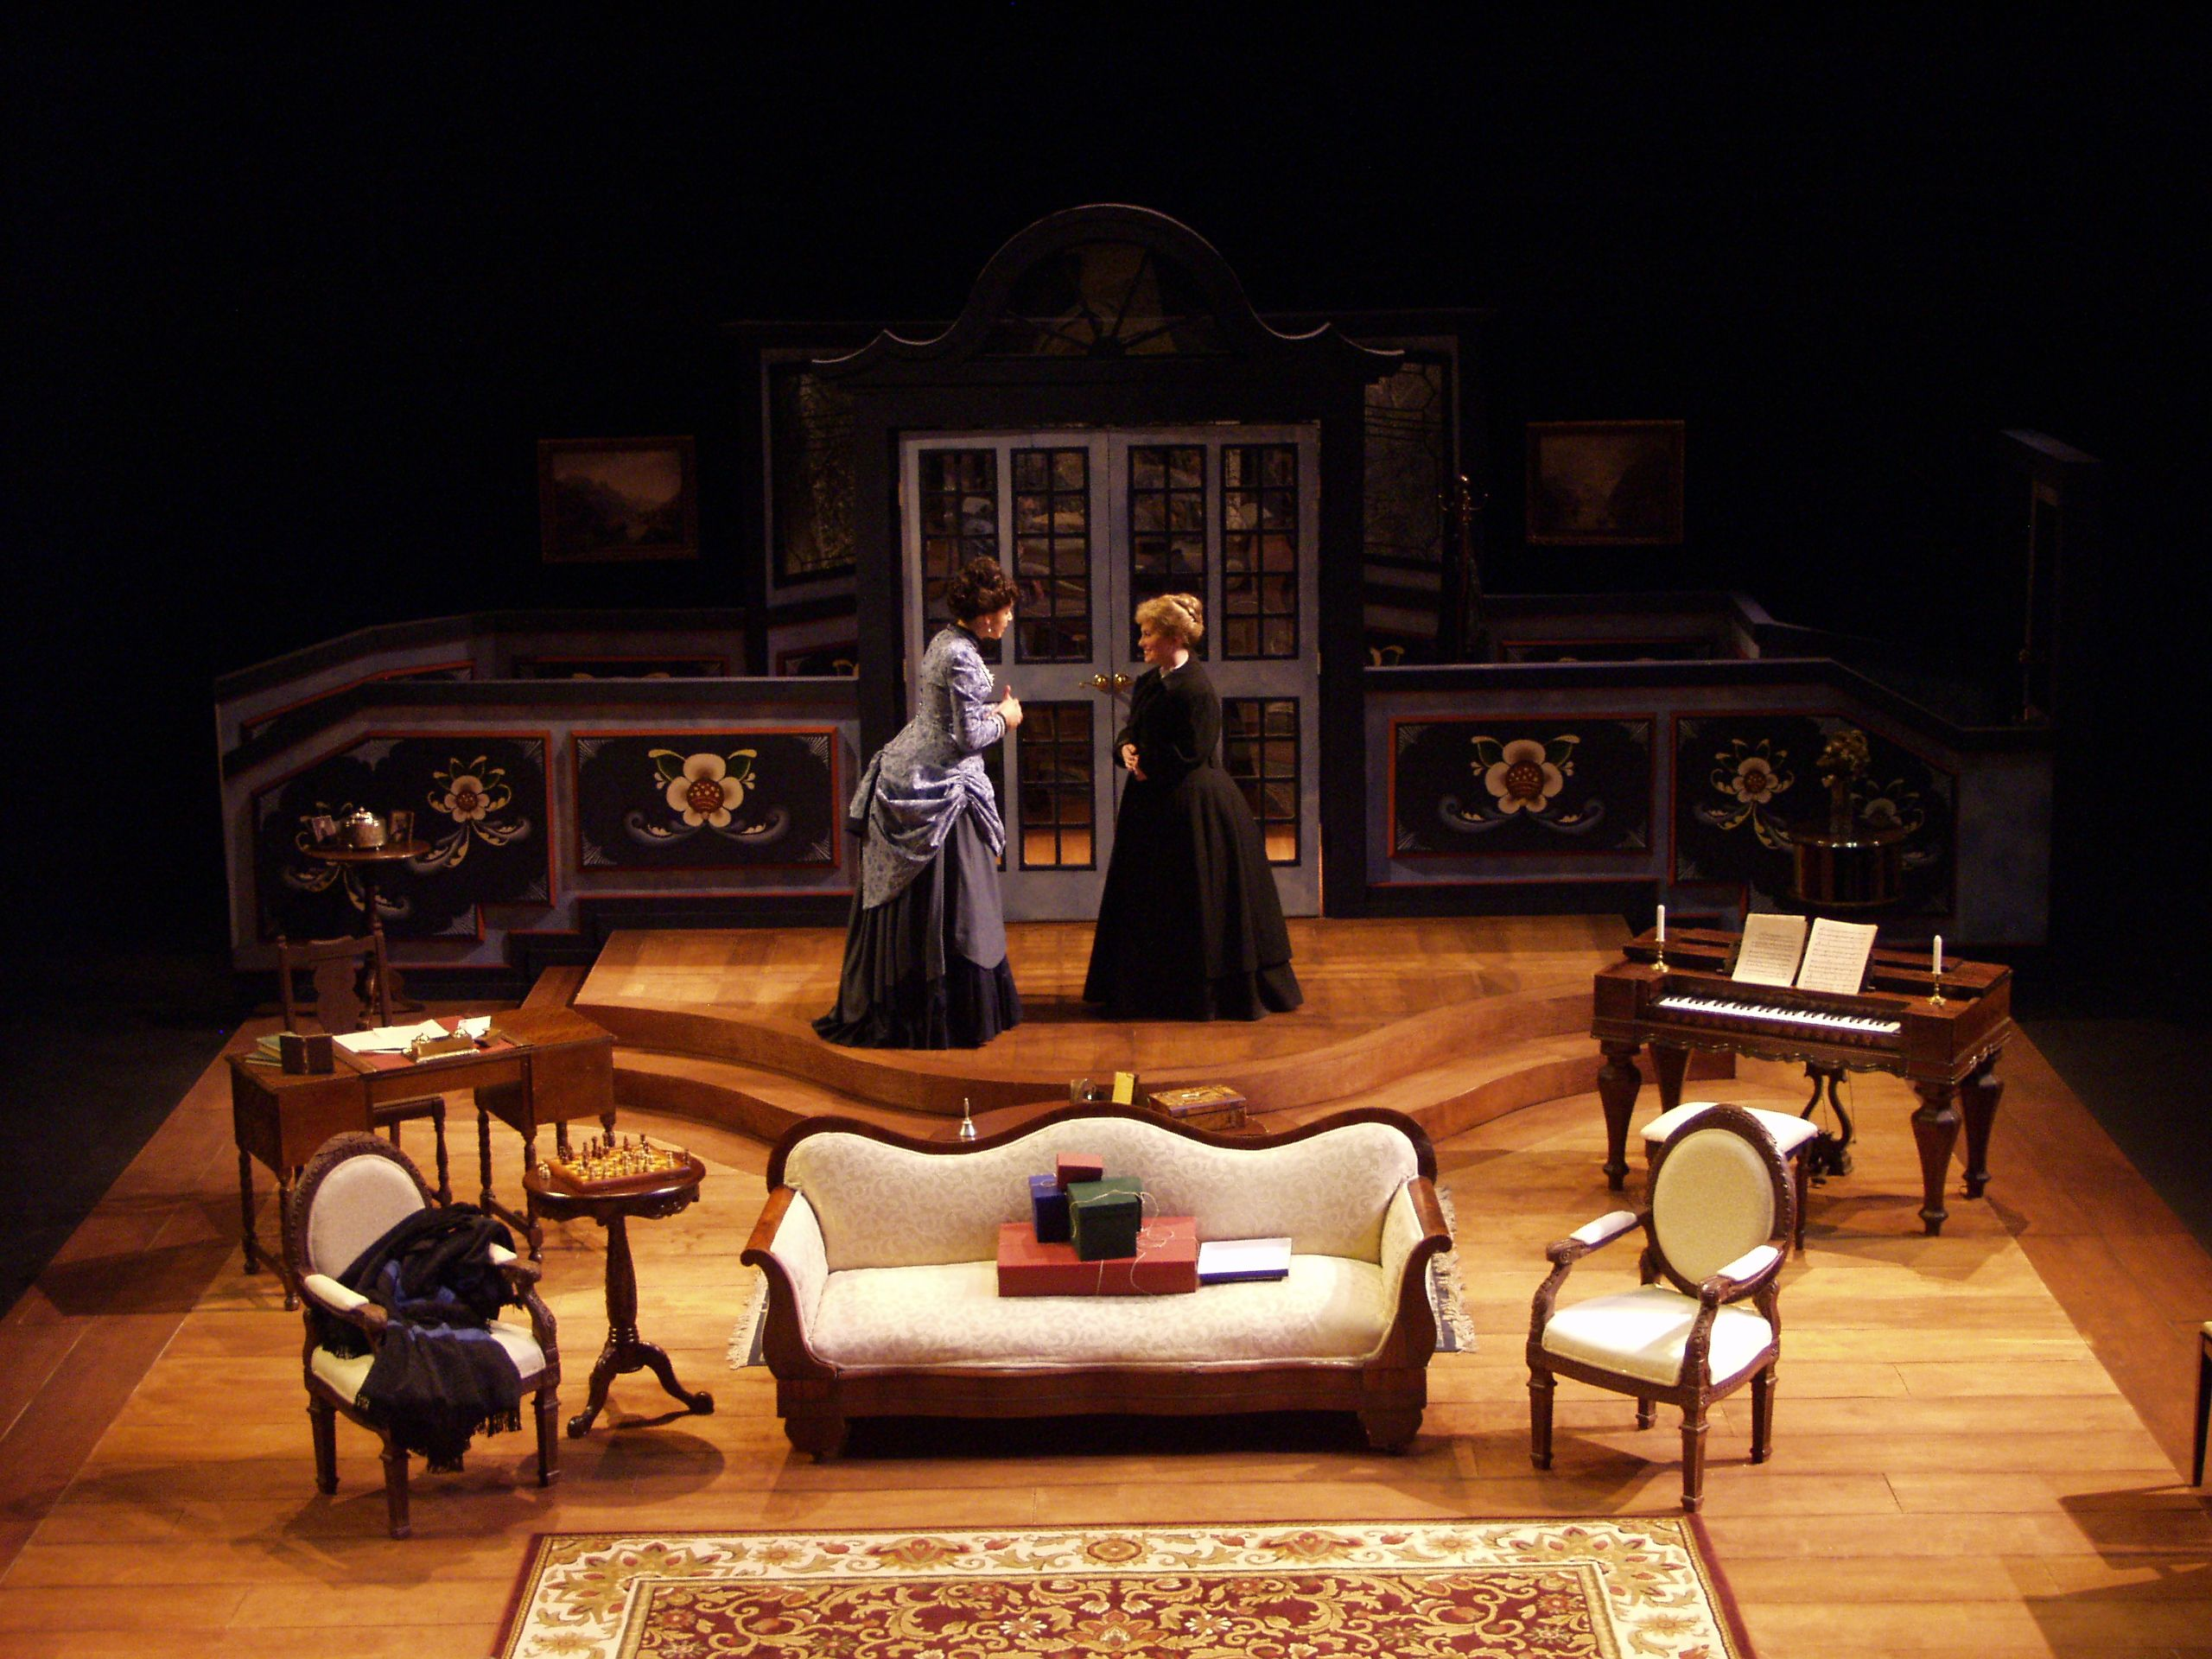 doll house essay Free essay: the doll house by henrik ibsen eng/125 university of phoenix in dollhouse, the husband torvald treated nora as a child with no mind.